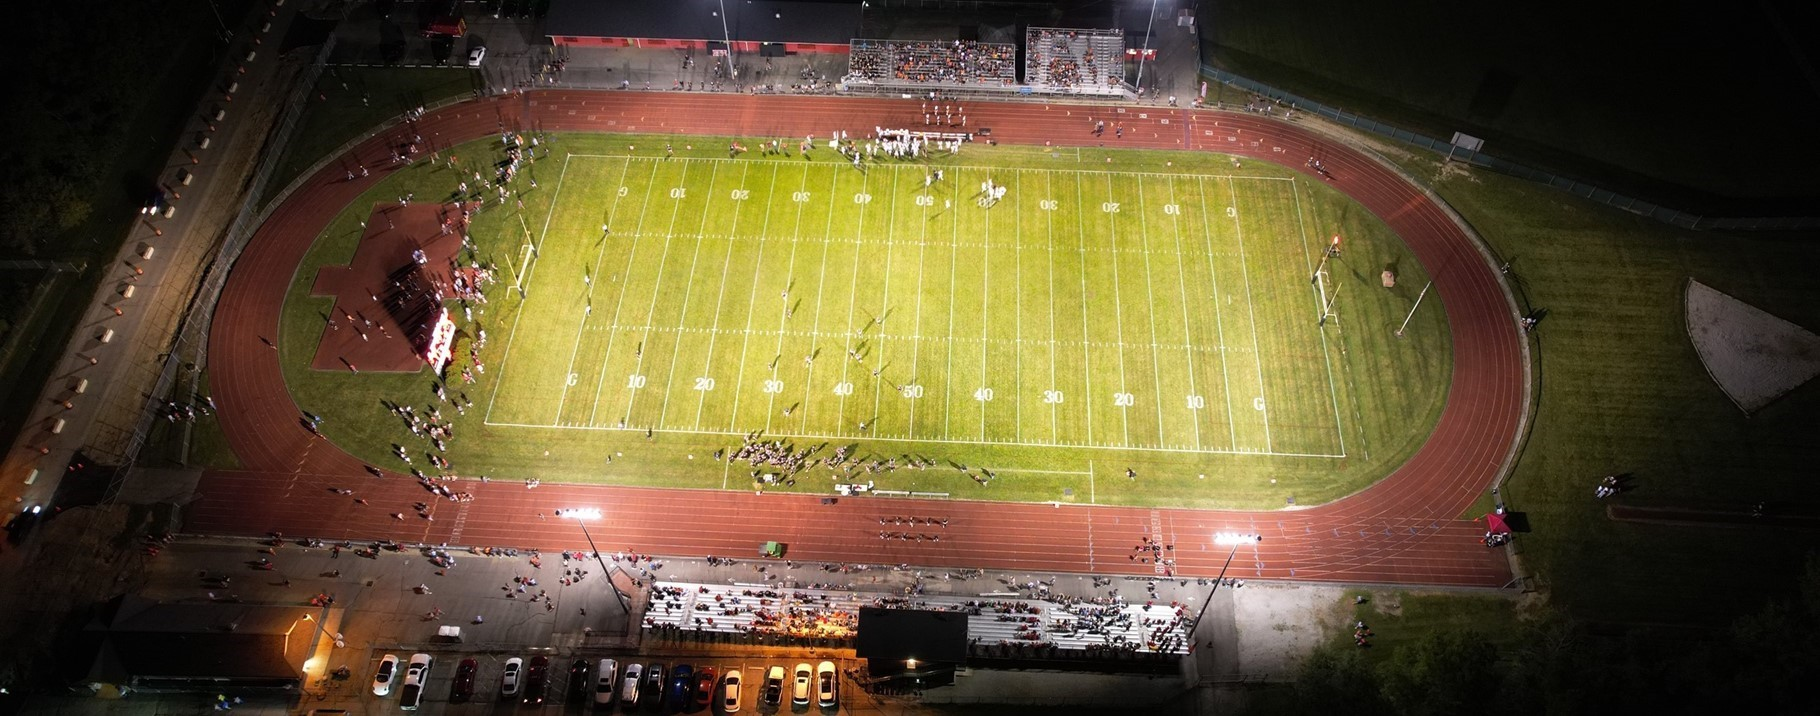 arial view of football stadium